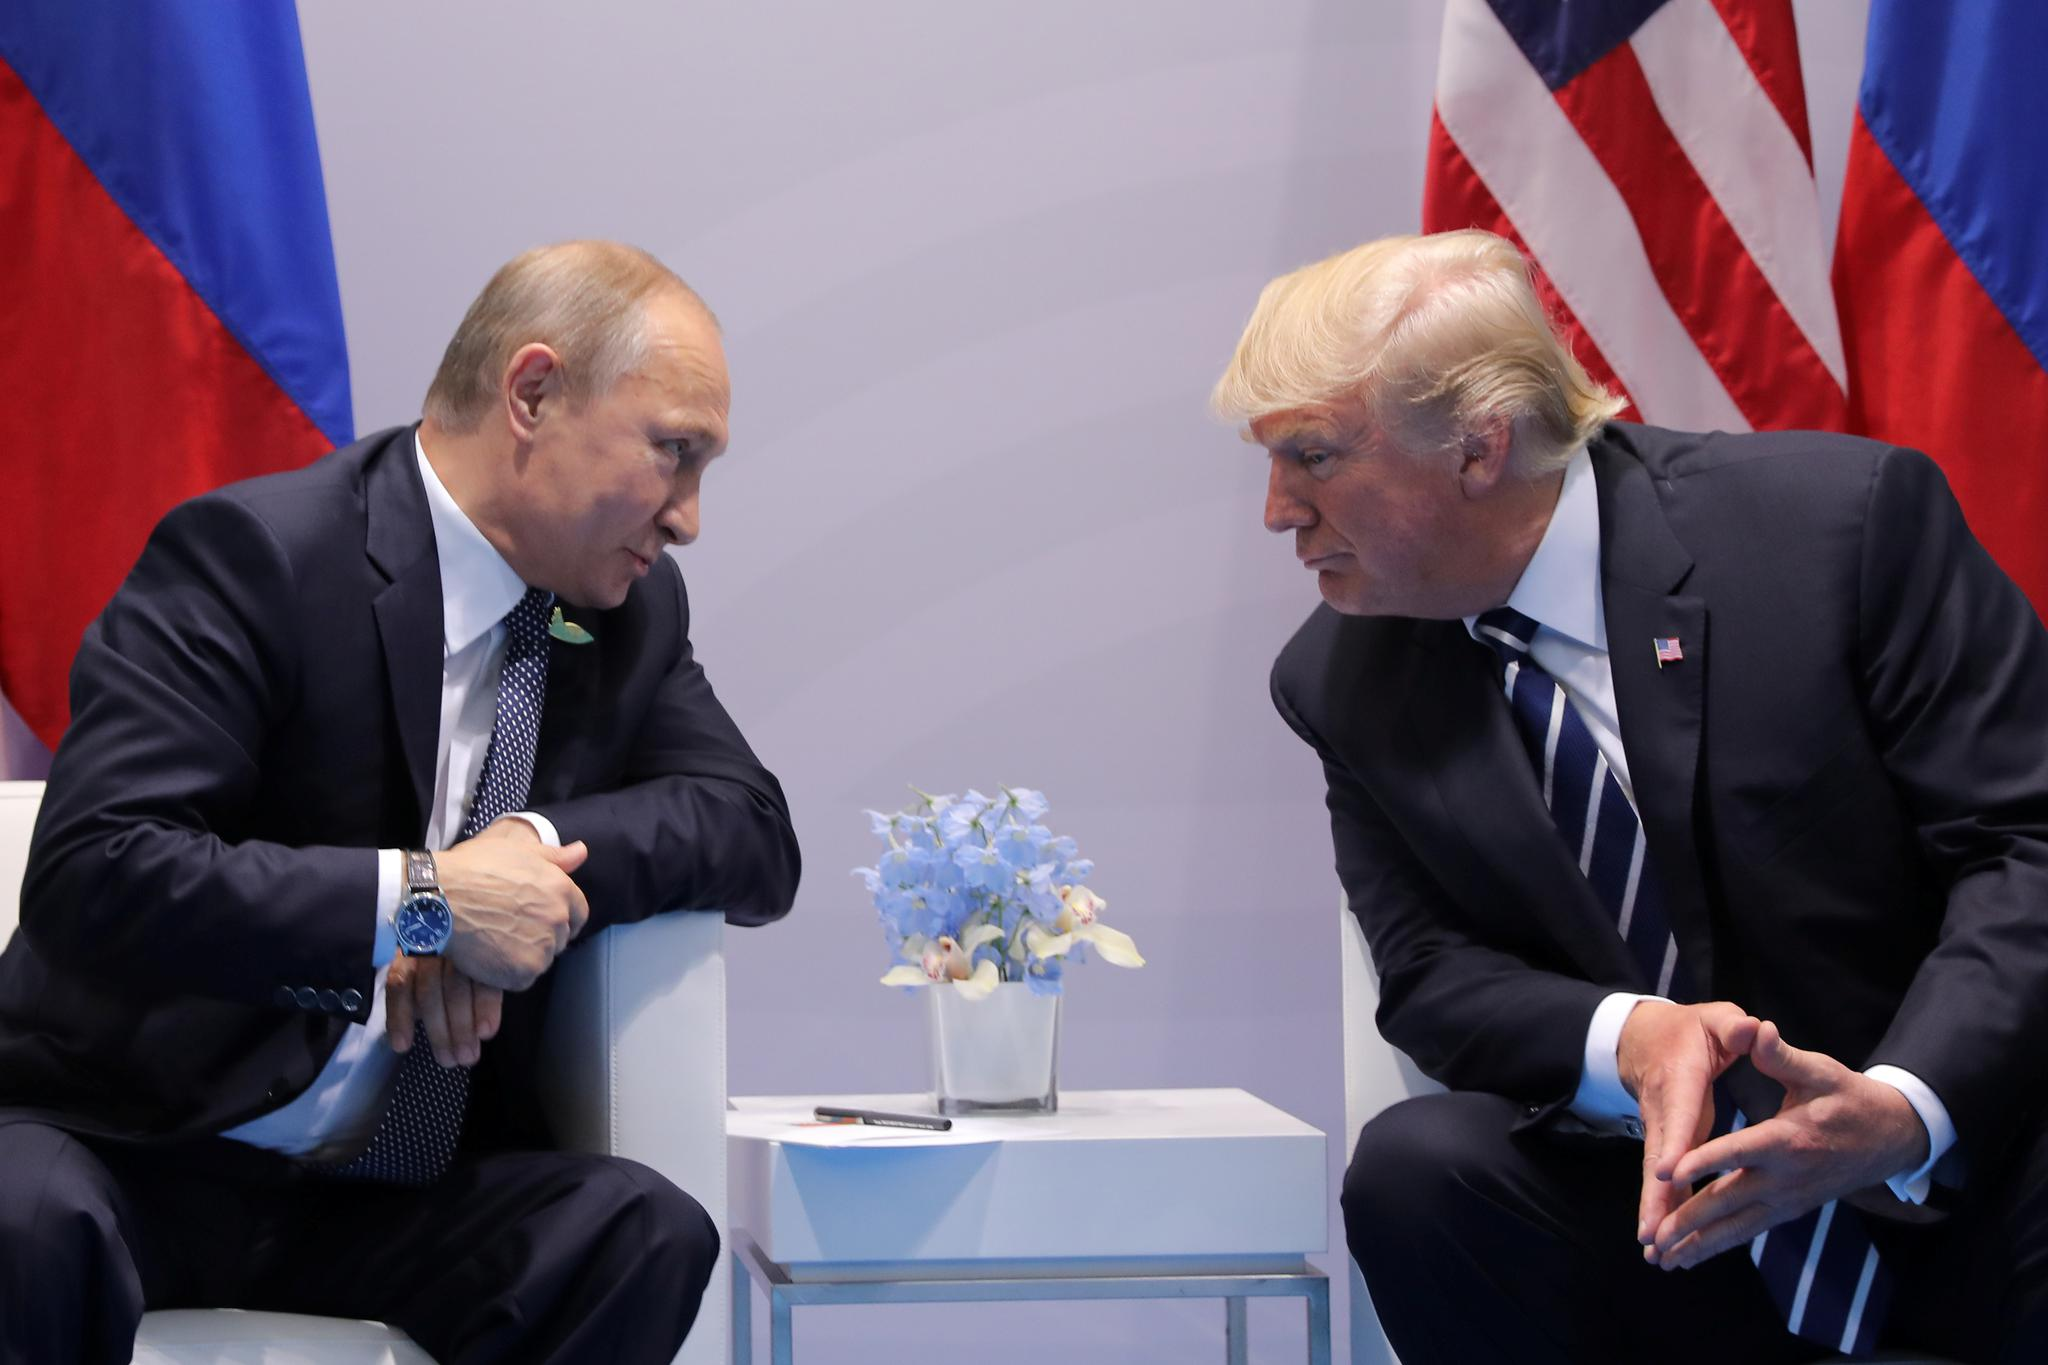 Russia's President Vladimir Putin talks to U.S. President Donald Trump during their bilateral meeting at the G-20 summit, in Hamburg, Germany. Forget collusion. U.S. counterspies worry the president has—wittingly or unwittingly—become a Kremlin 'asset.'